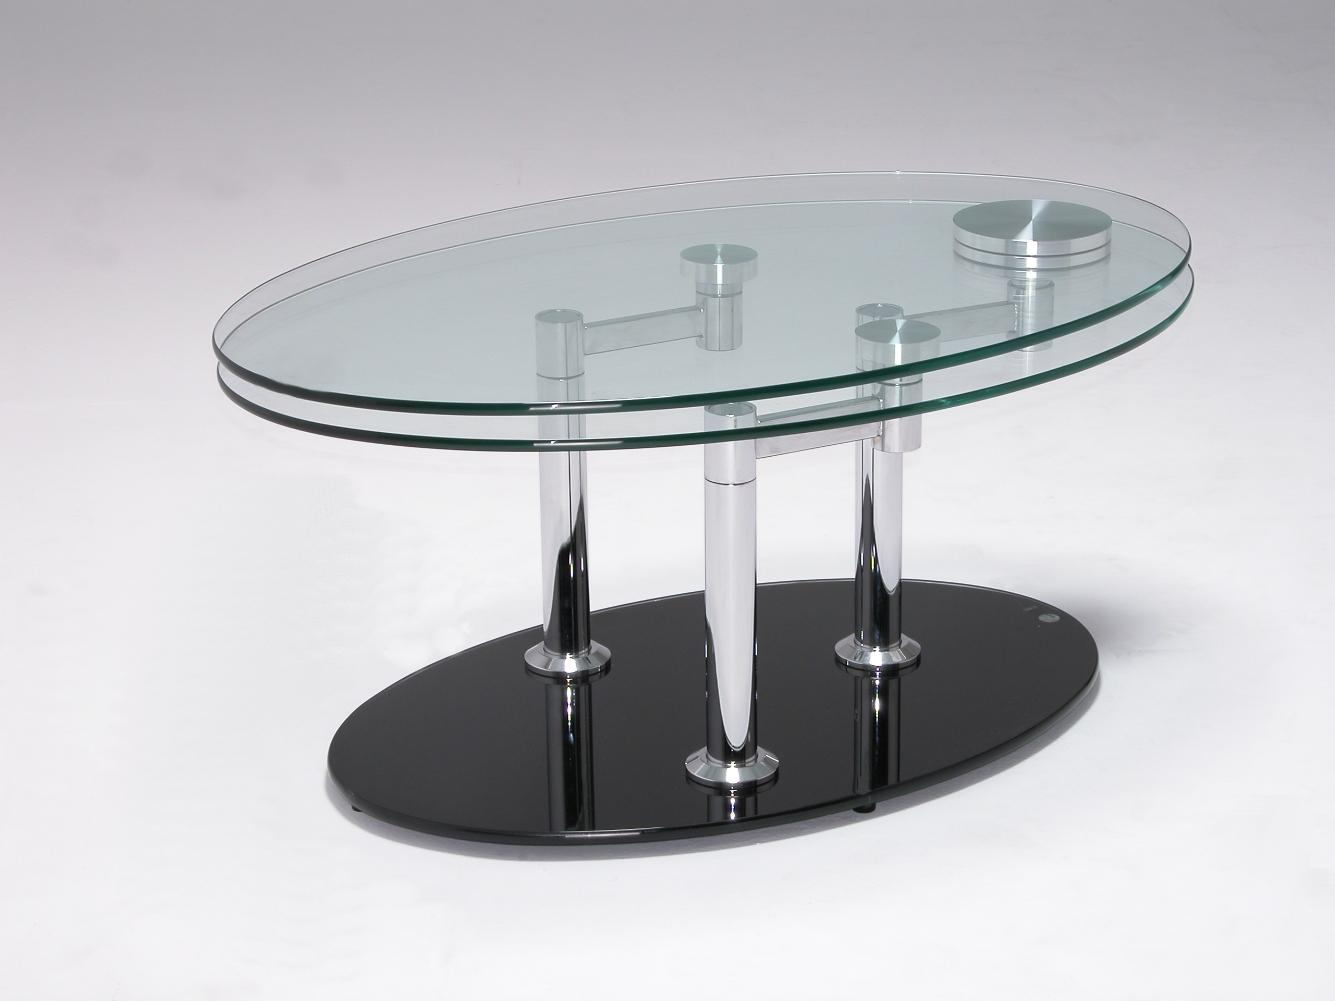 Picture of: Contemporary coffee tables oval